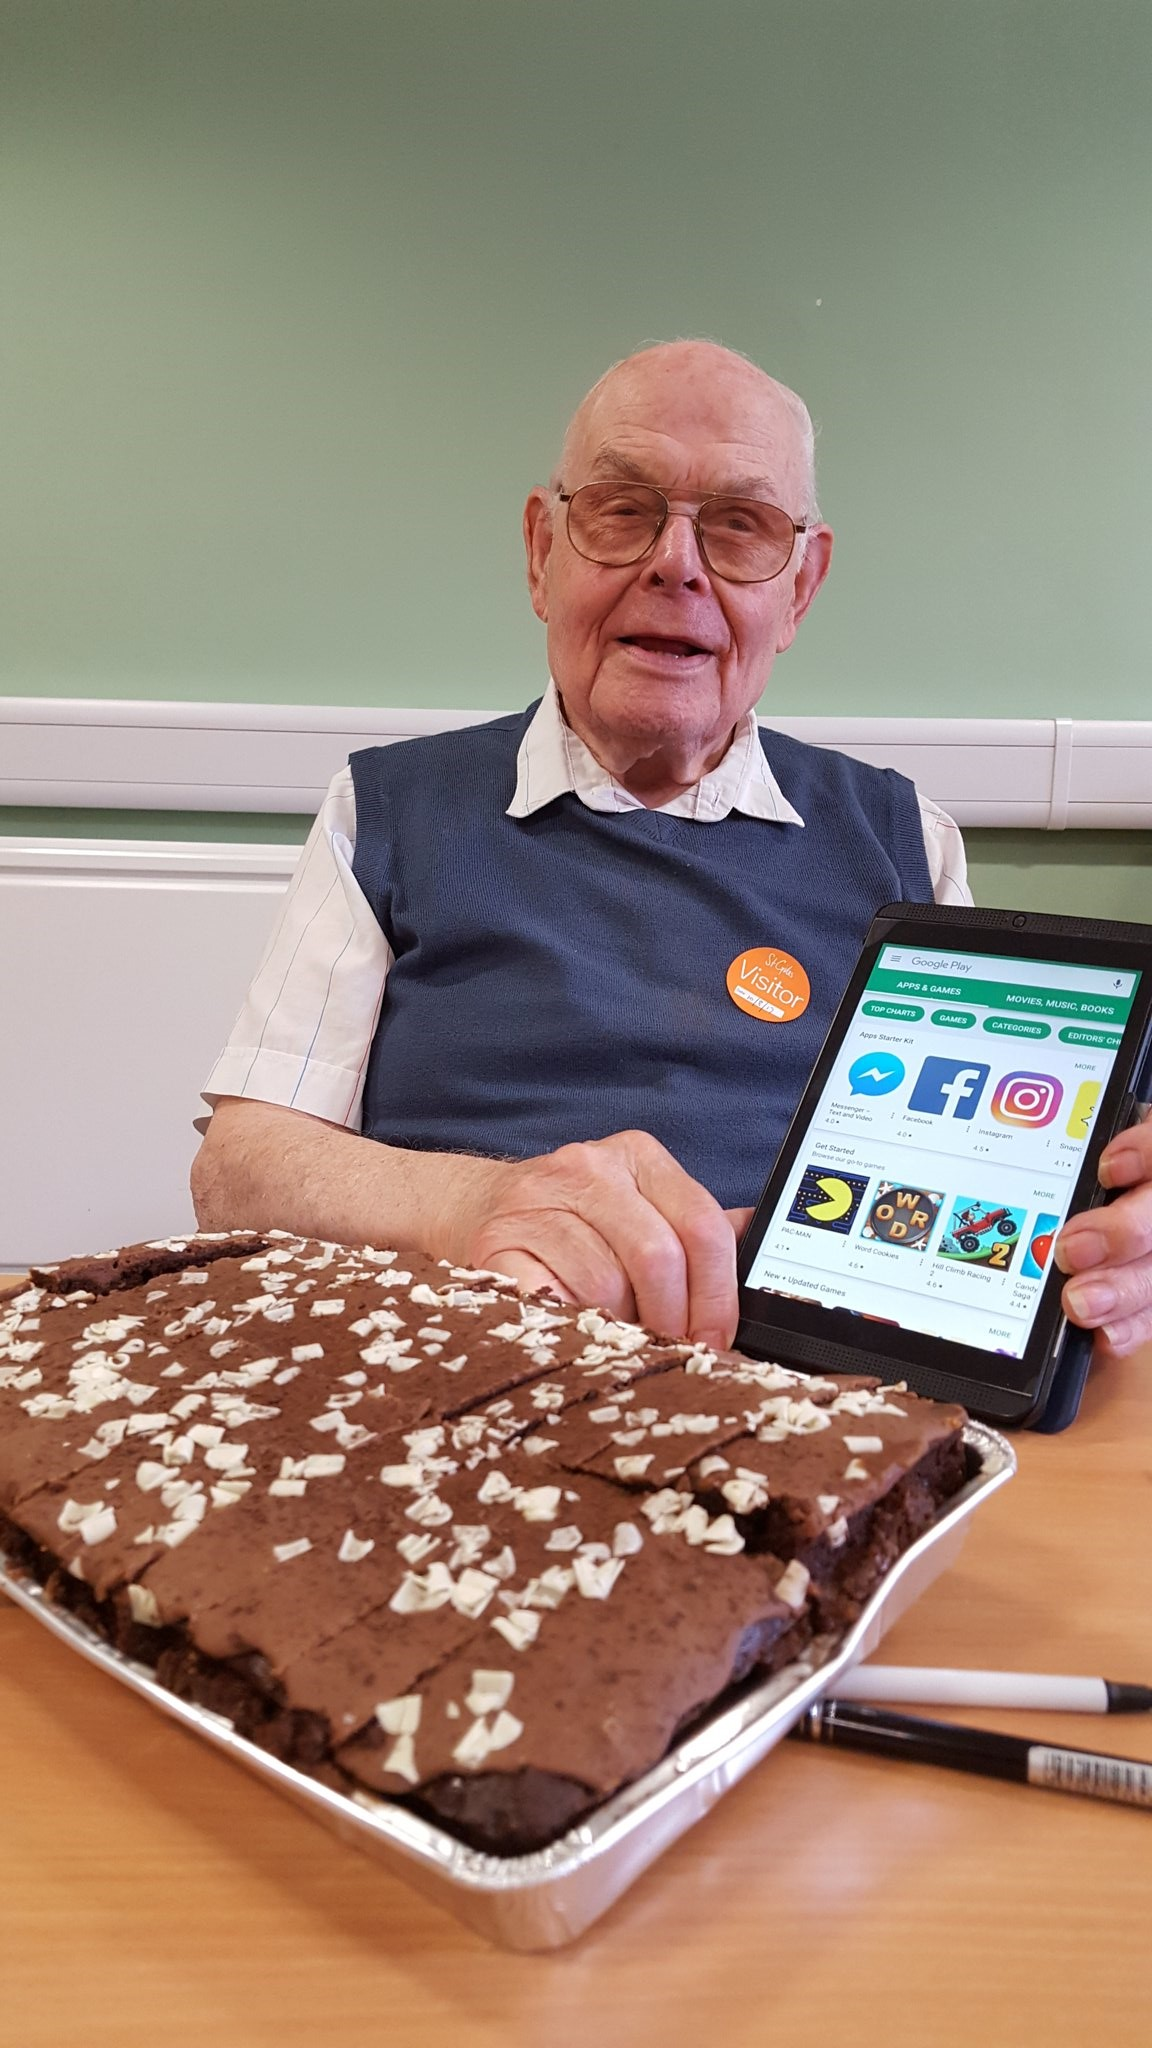 Fred goes viral on social media for 91st birthday